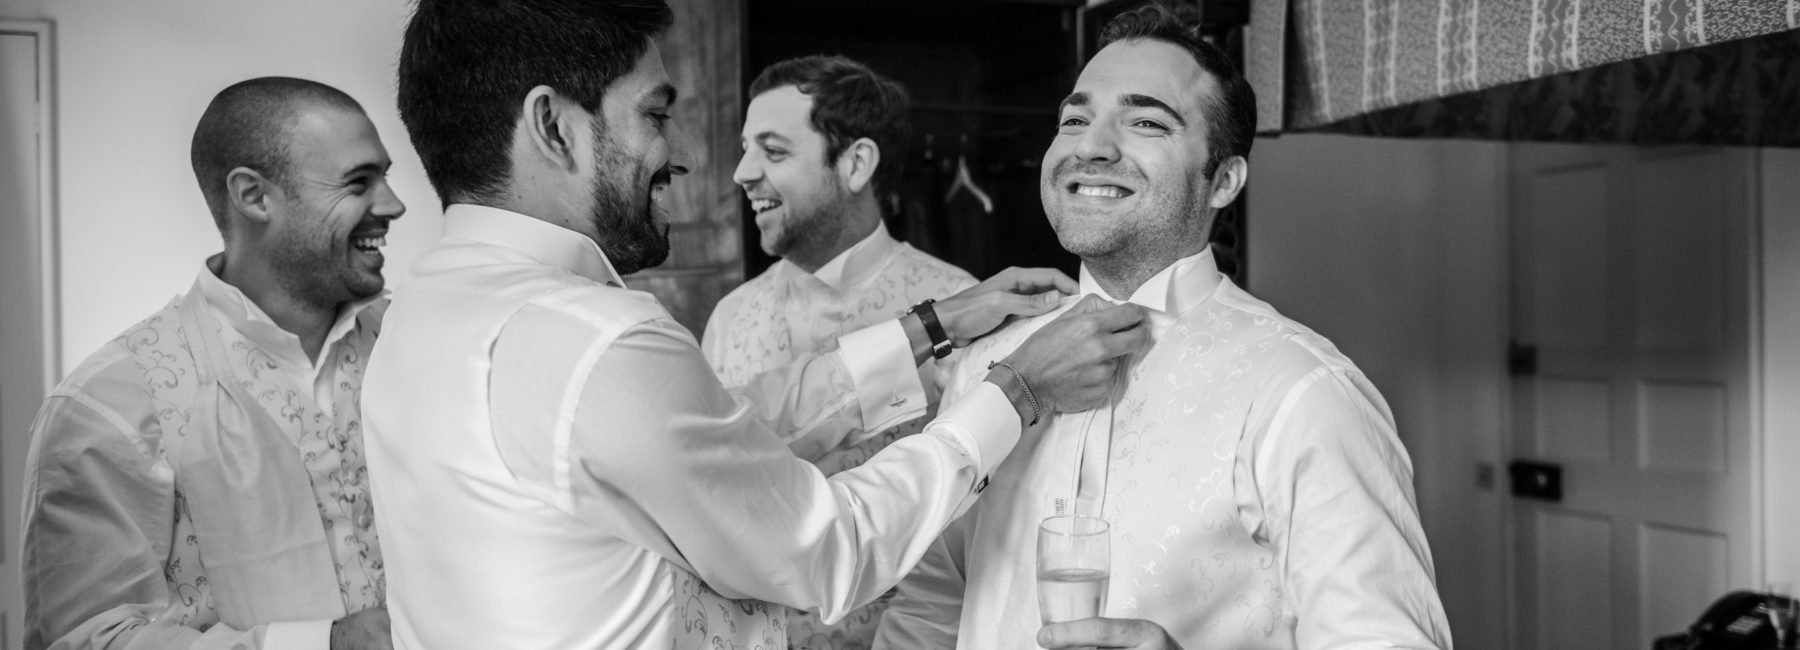 A group of men laughing, preparing for a wedding